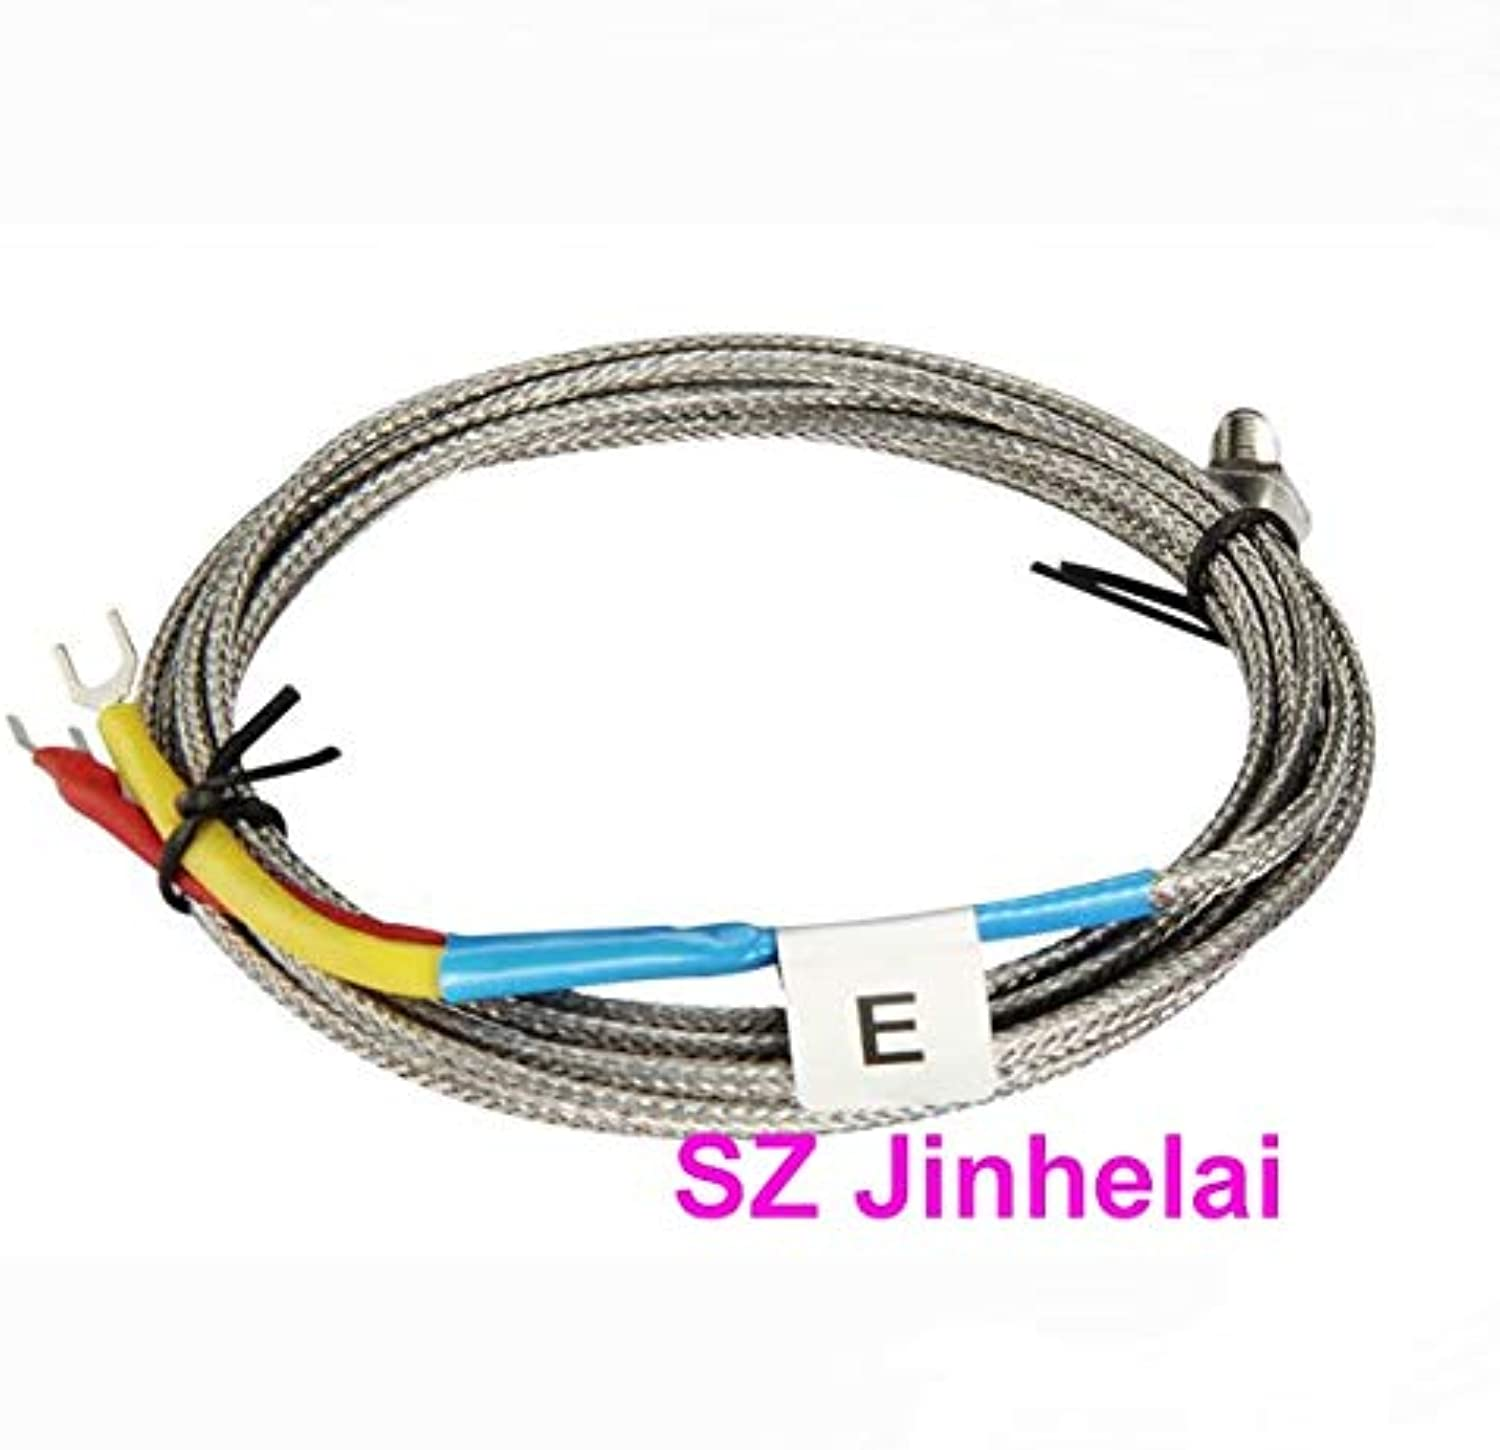 CLin WRET02 WRNT02 Authentic Original Screw Type thermocouple 3M, Induction Temperature 0400 centigrade  (color  WRNT02 K Type 3M)